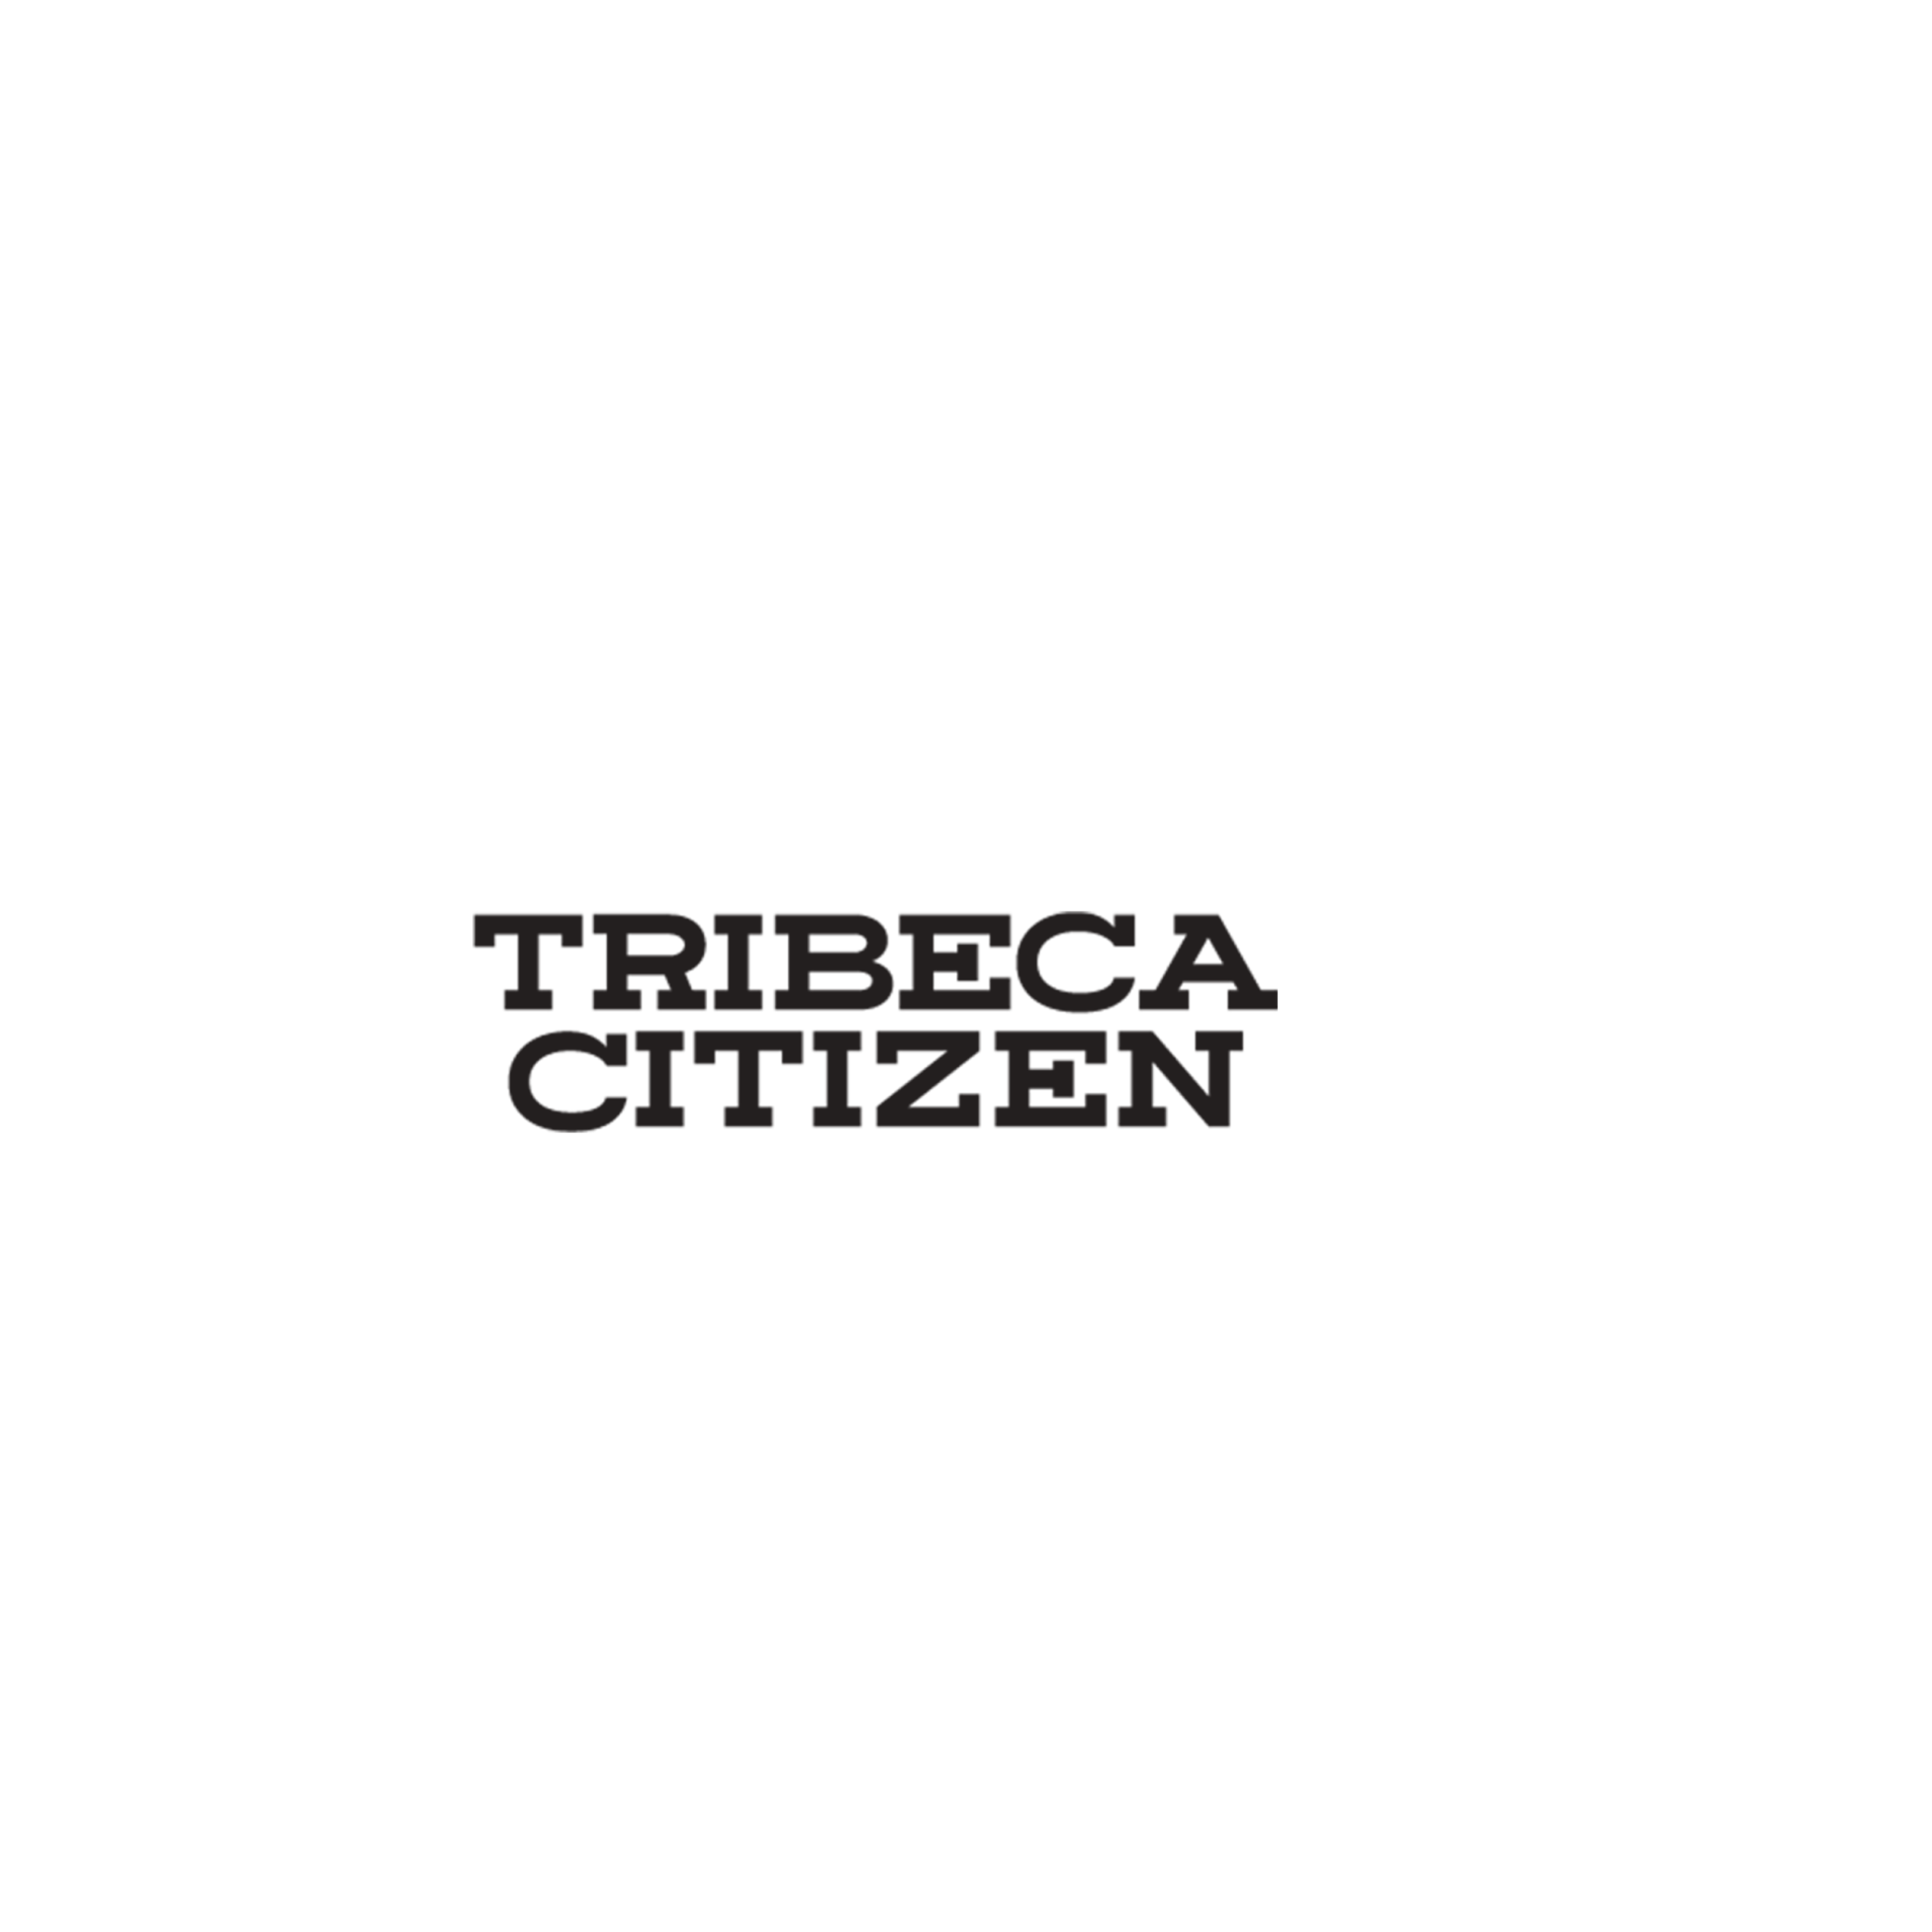 Mike Lubin Brown Harris Stevens Press Mention Tribeca Citizen